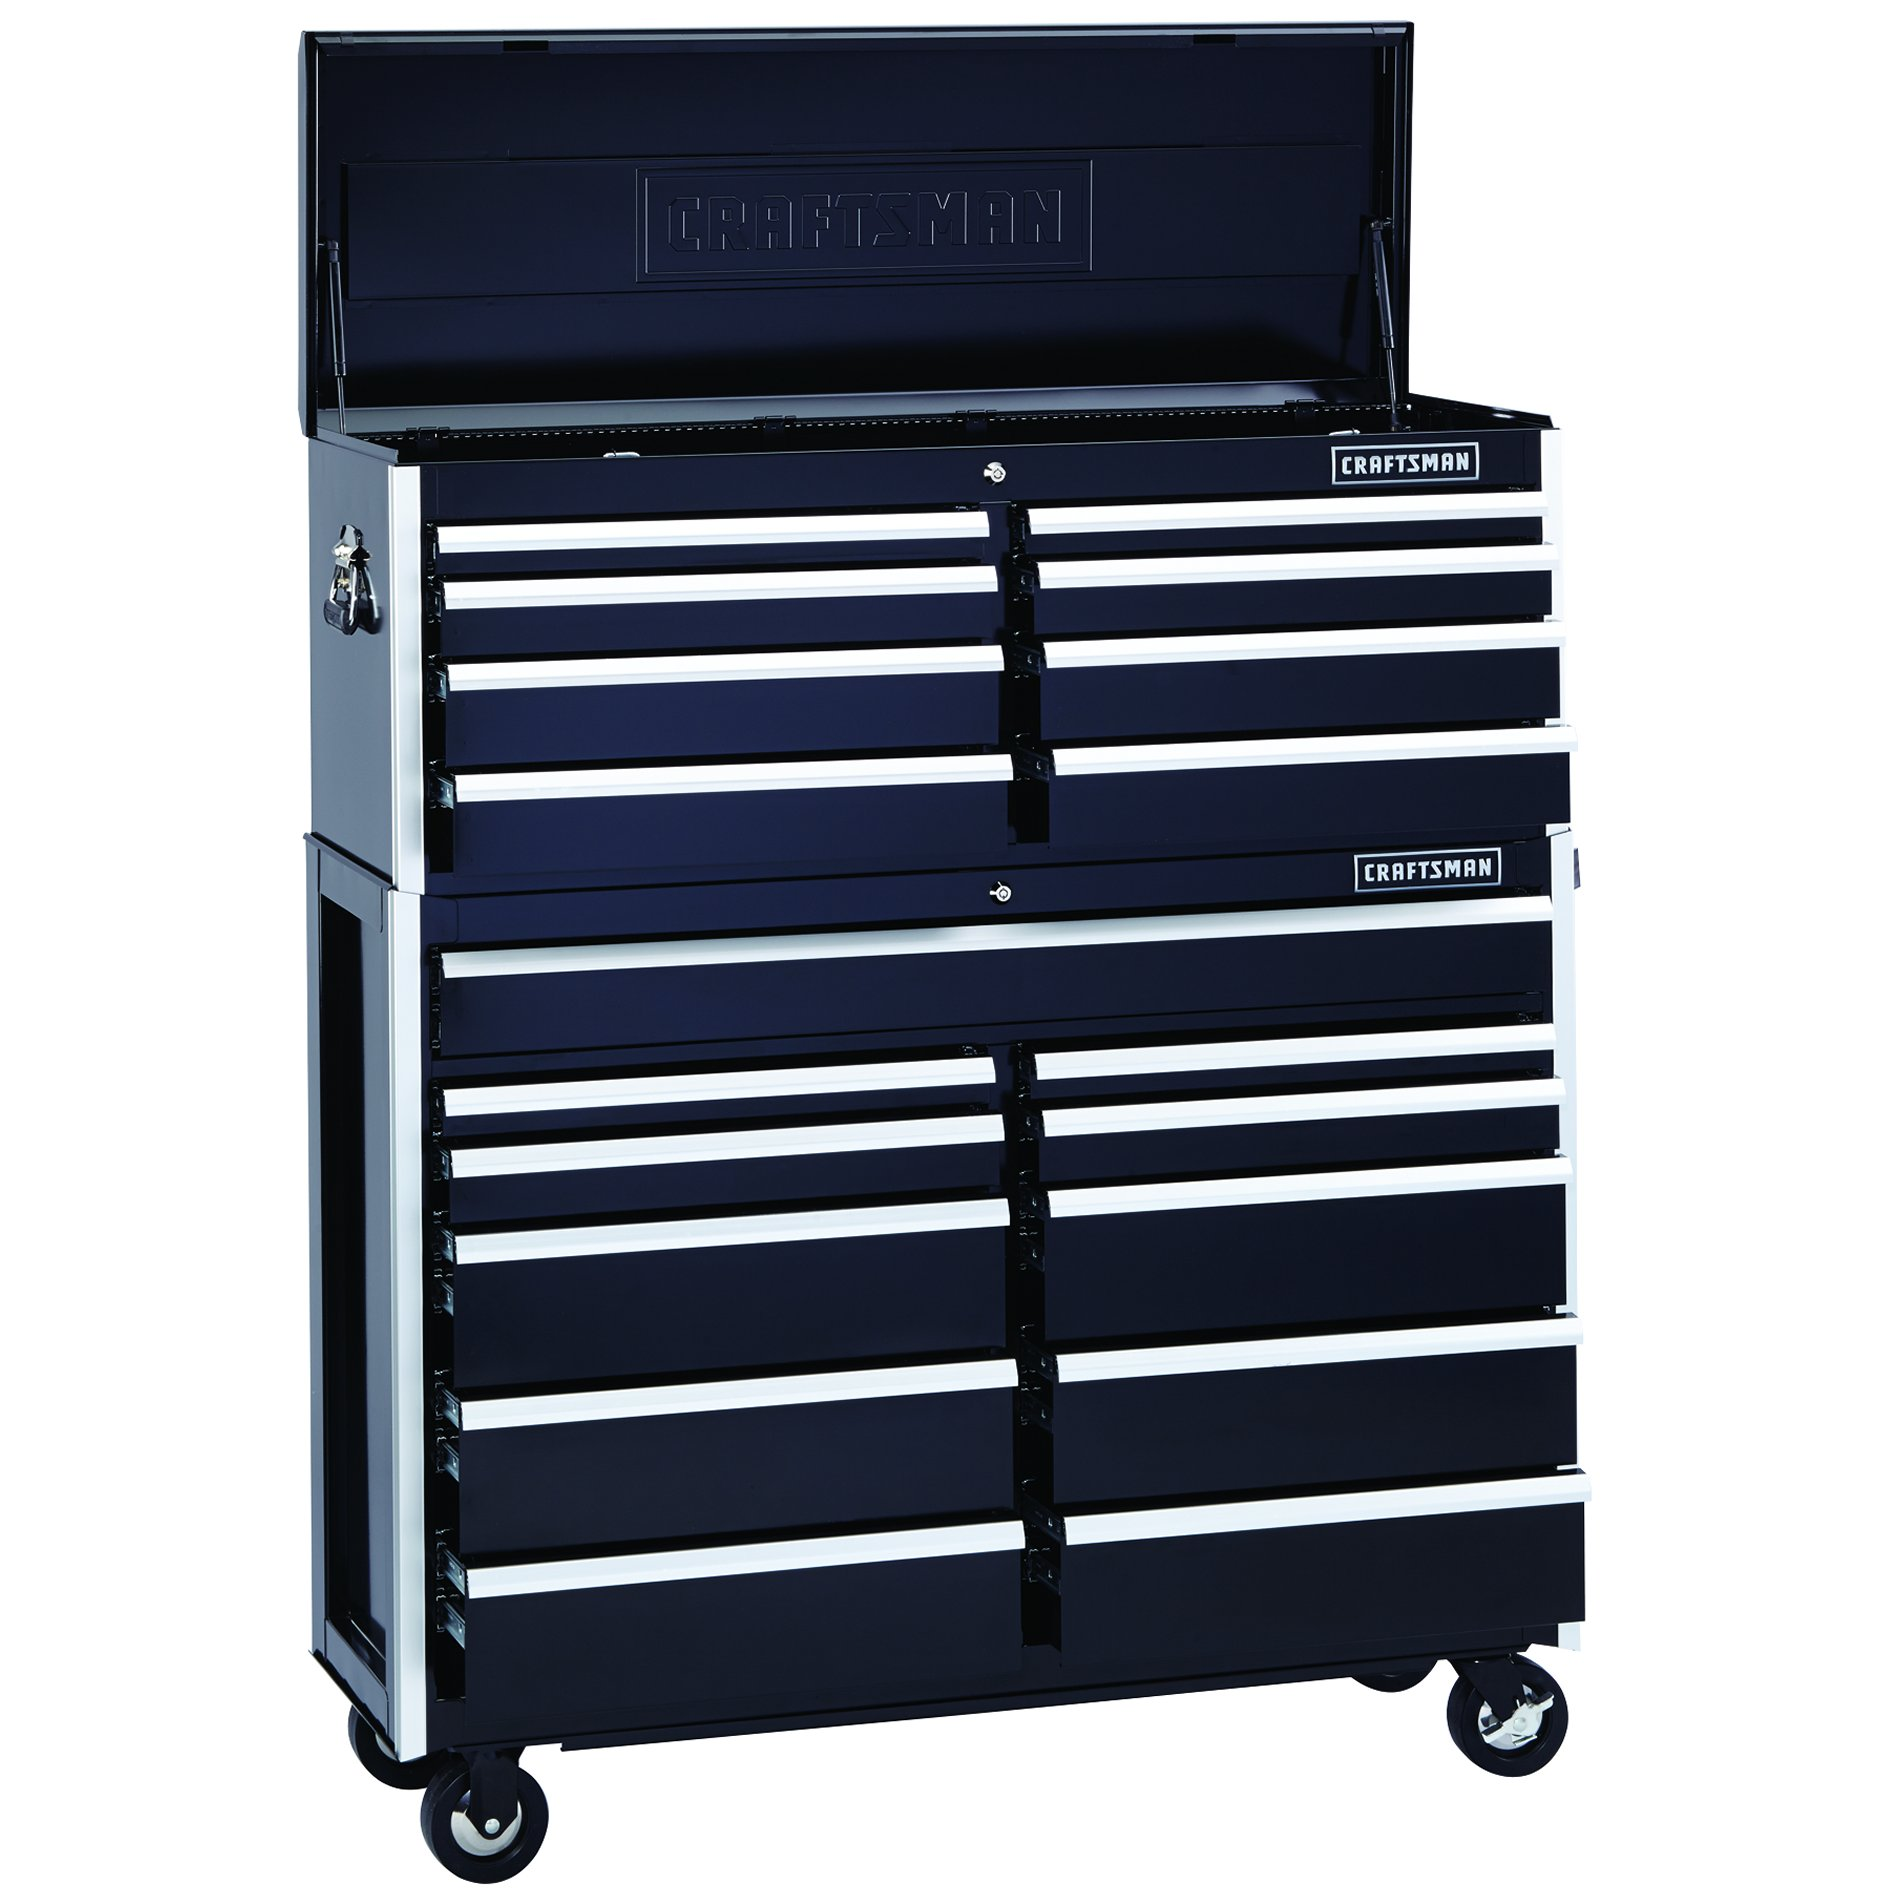 Craftsman EDGE Series 52-In. 8-Drawer Premium Heavy-Duty Ball-Bearing Top Chest - Black